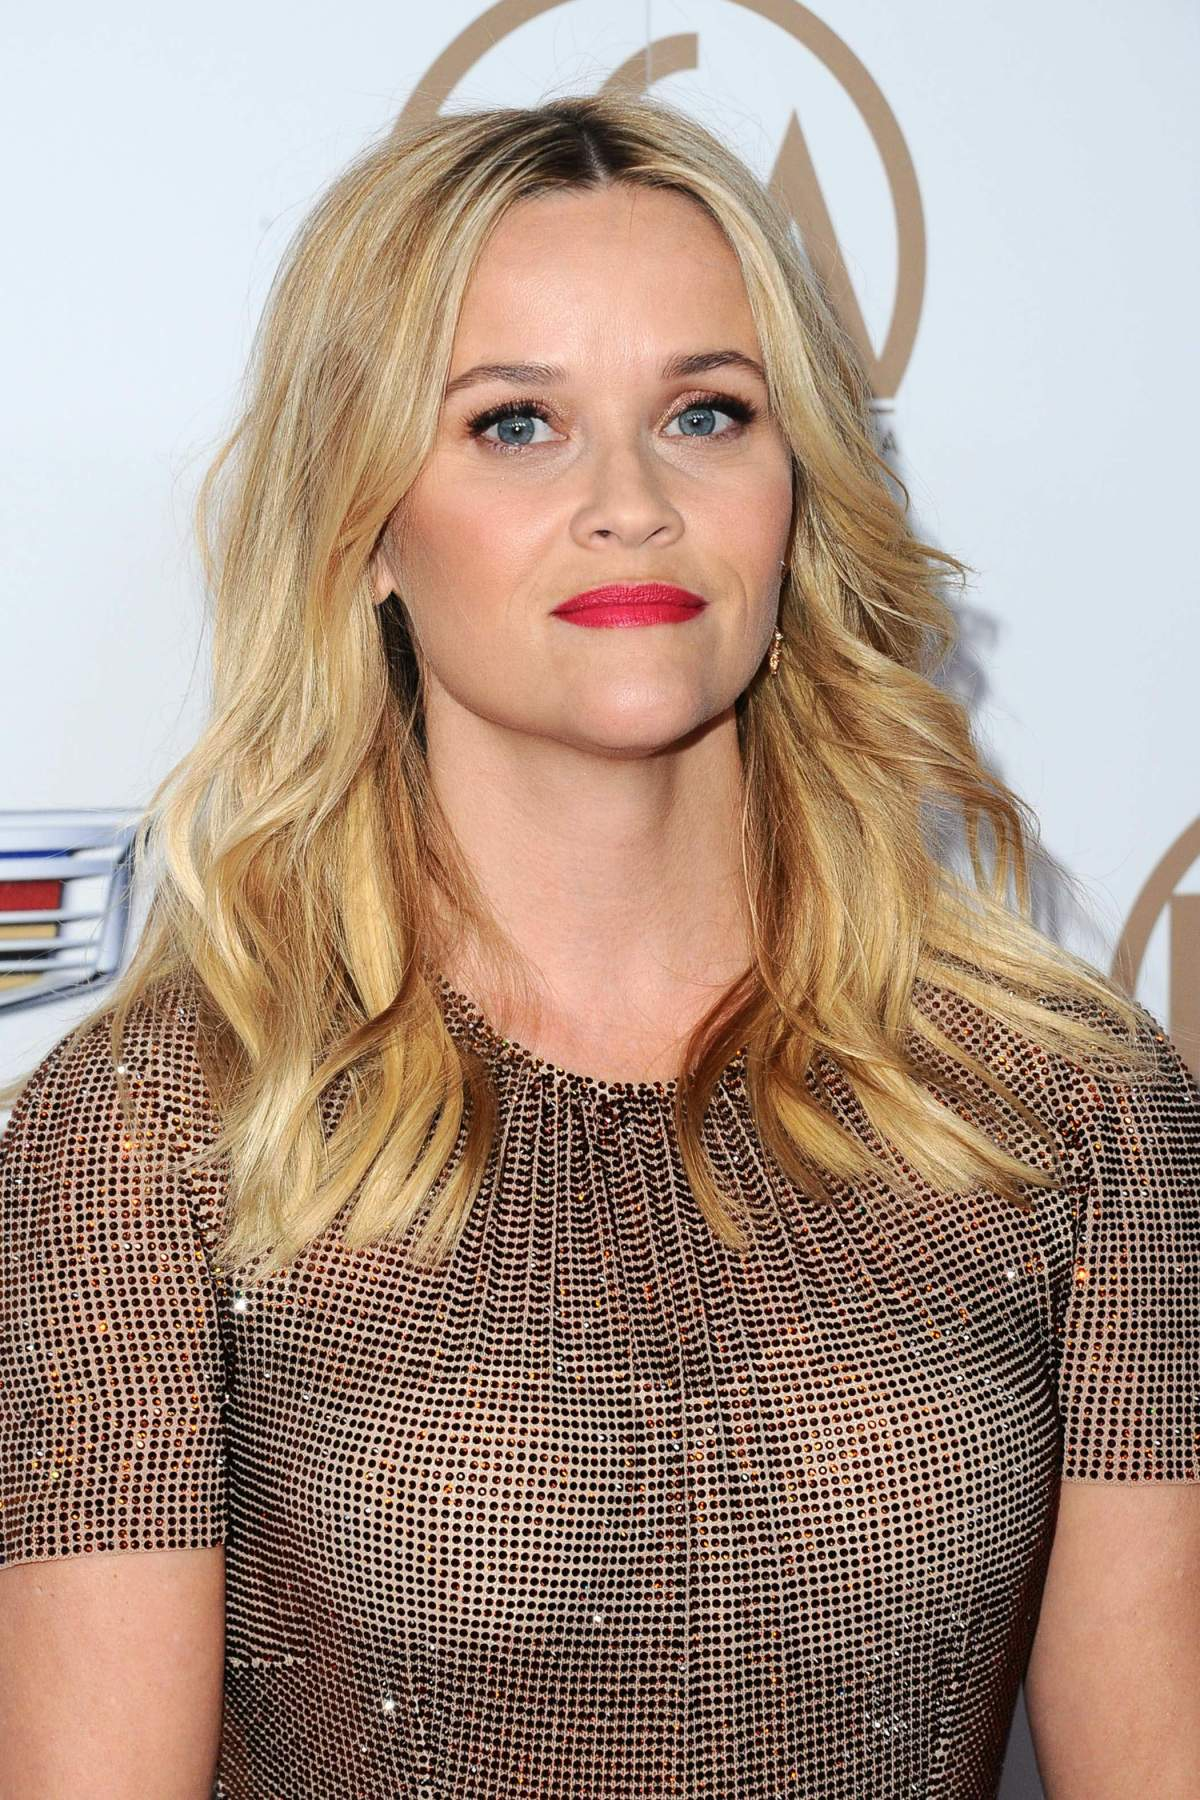 62230823_reese-witherspoon-4.jpg